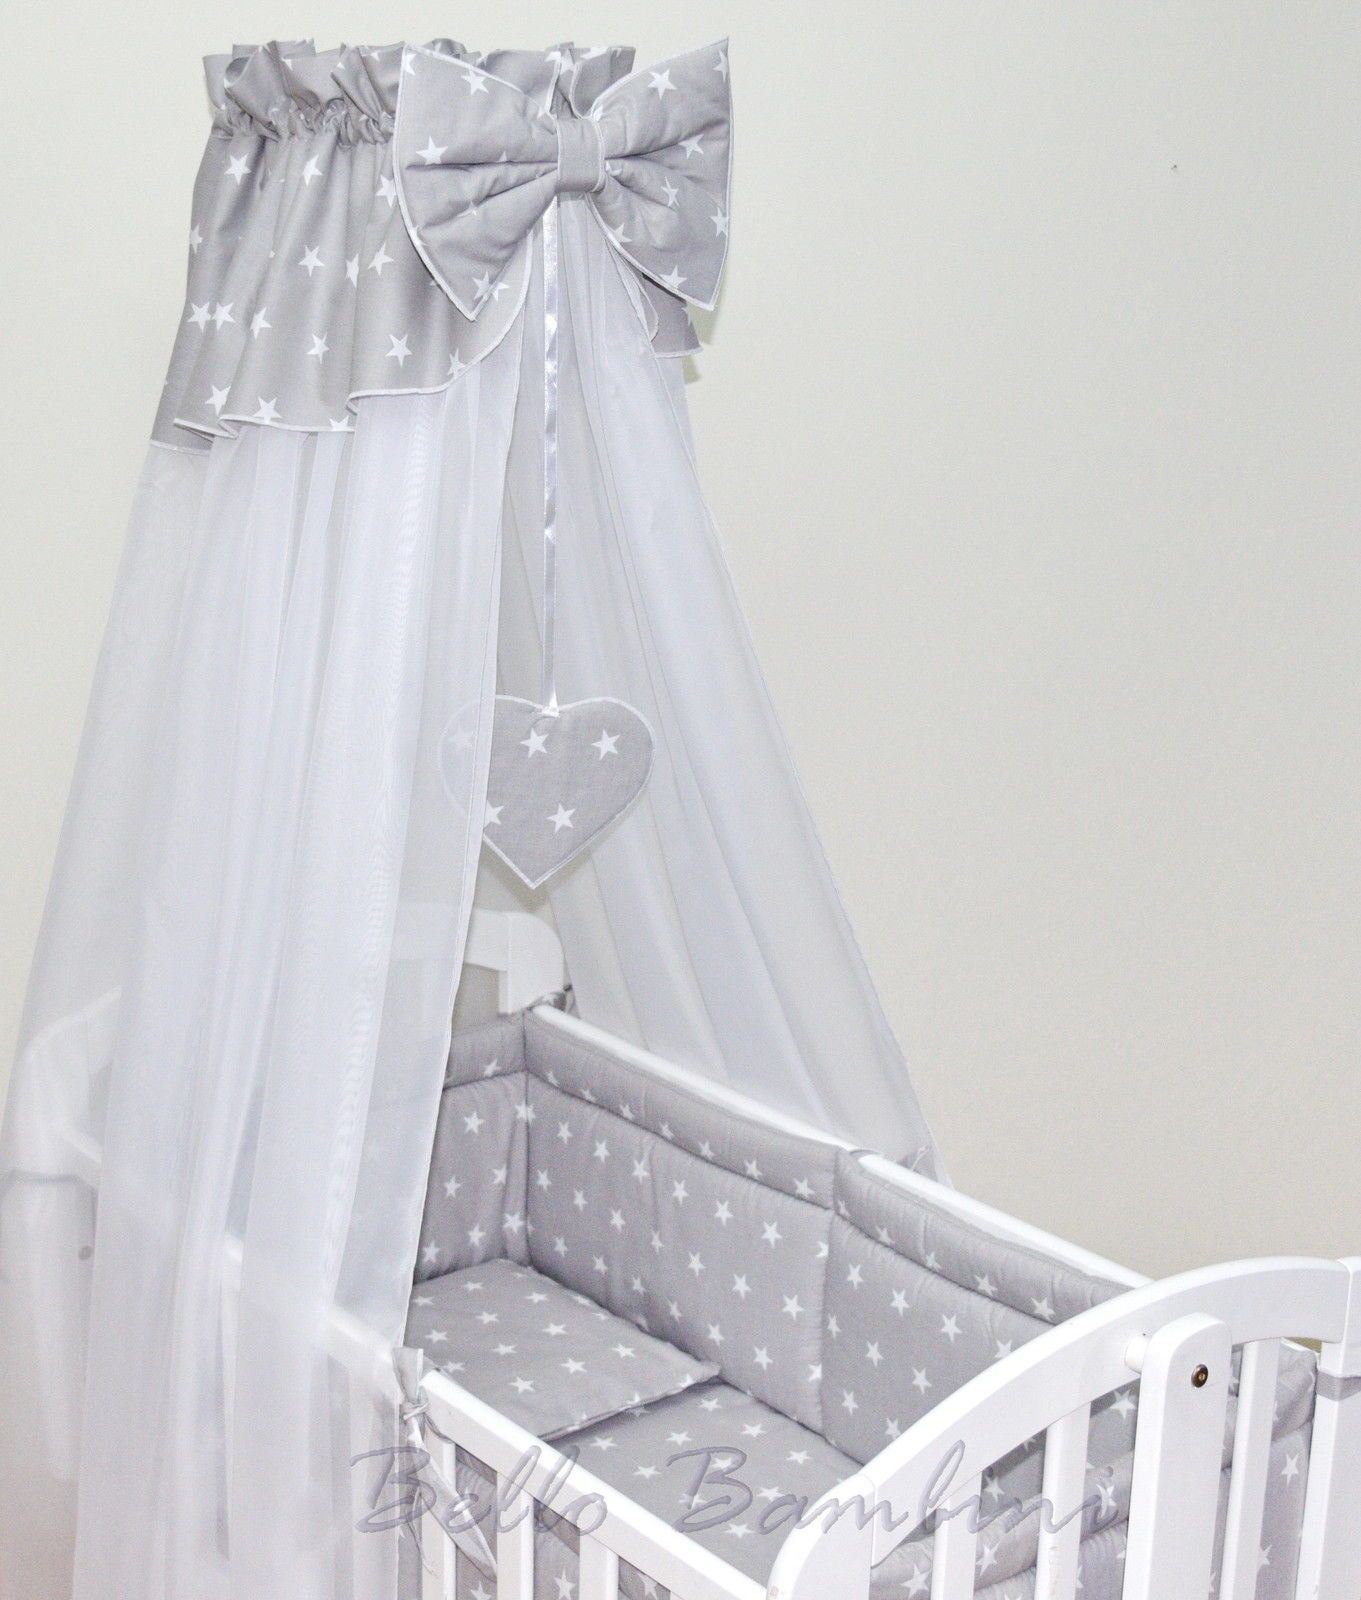 Details About Canopy Drape To Fit Baby Swinging Crib Wicker Basket Craddle Holder Not Included Babyschaukel Weidenkorb Und Wiege